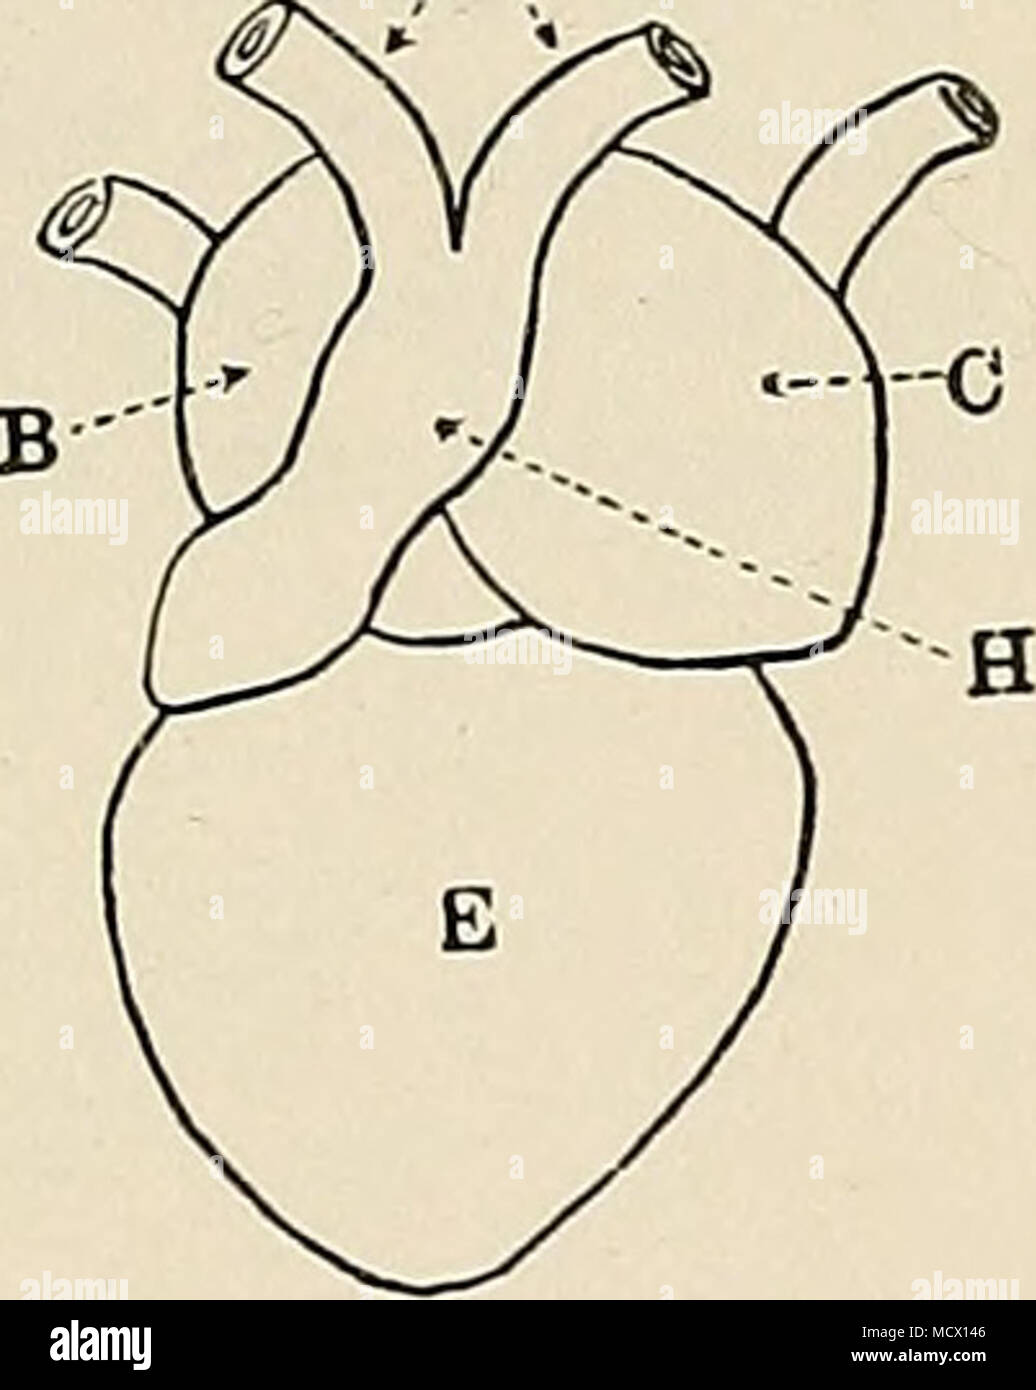 . b'ig. 12. The gross anatomy of frog'8 heart. (Ventral view after Cyou, dorsal view after Howes.) A, aortae; B, right auricle; C, left auricle; D, pulmonary vein K, ventricle; F, sinus venosus; G, sinu-auricular valves; H, bulbus arteriosus. sinus joins the auricle ; also the frenum, a slender ligament which attaches the dorsal wall of the ventricle to the peri- cardium. b. Origin and Course of the JVavc of Contraction. I.—Inspection.—Try to observe the place where the wave of contraction begins, and the order in which it spreads over the different chambers of the heart. See that when a part  - Stock Image